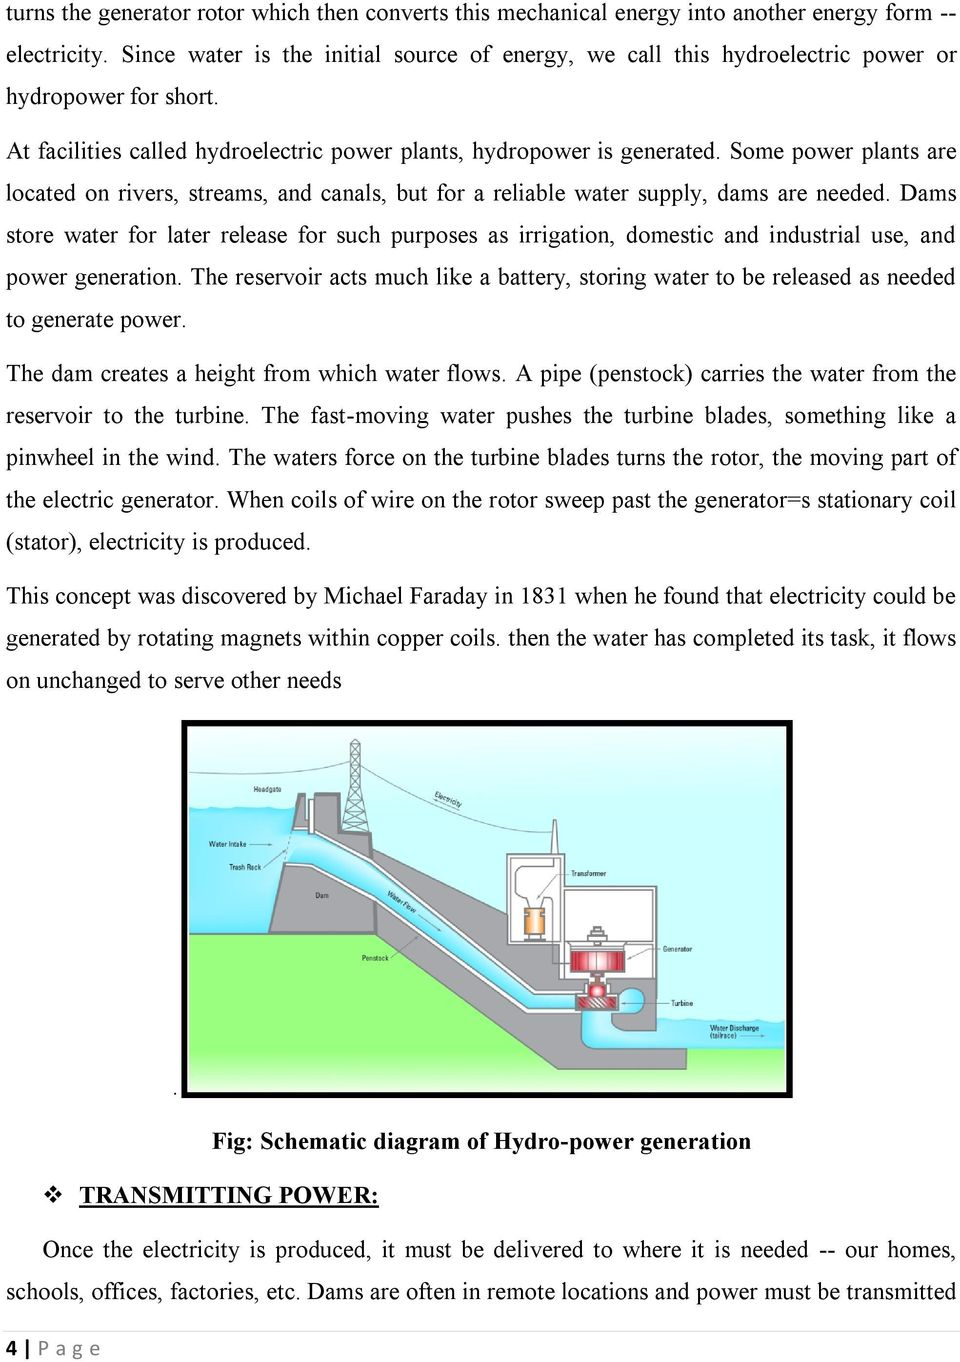 medium resolution of some power plants are located on rivers streams and canals but for a